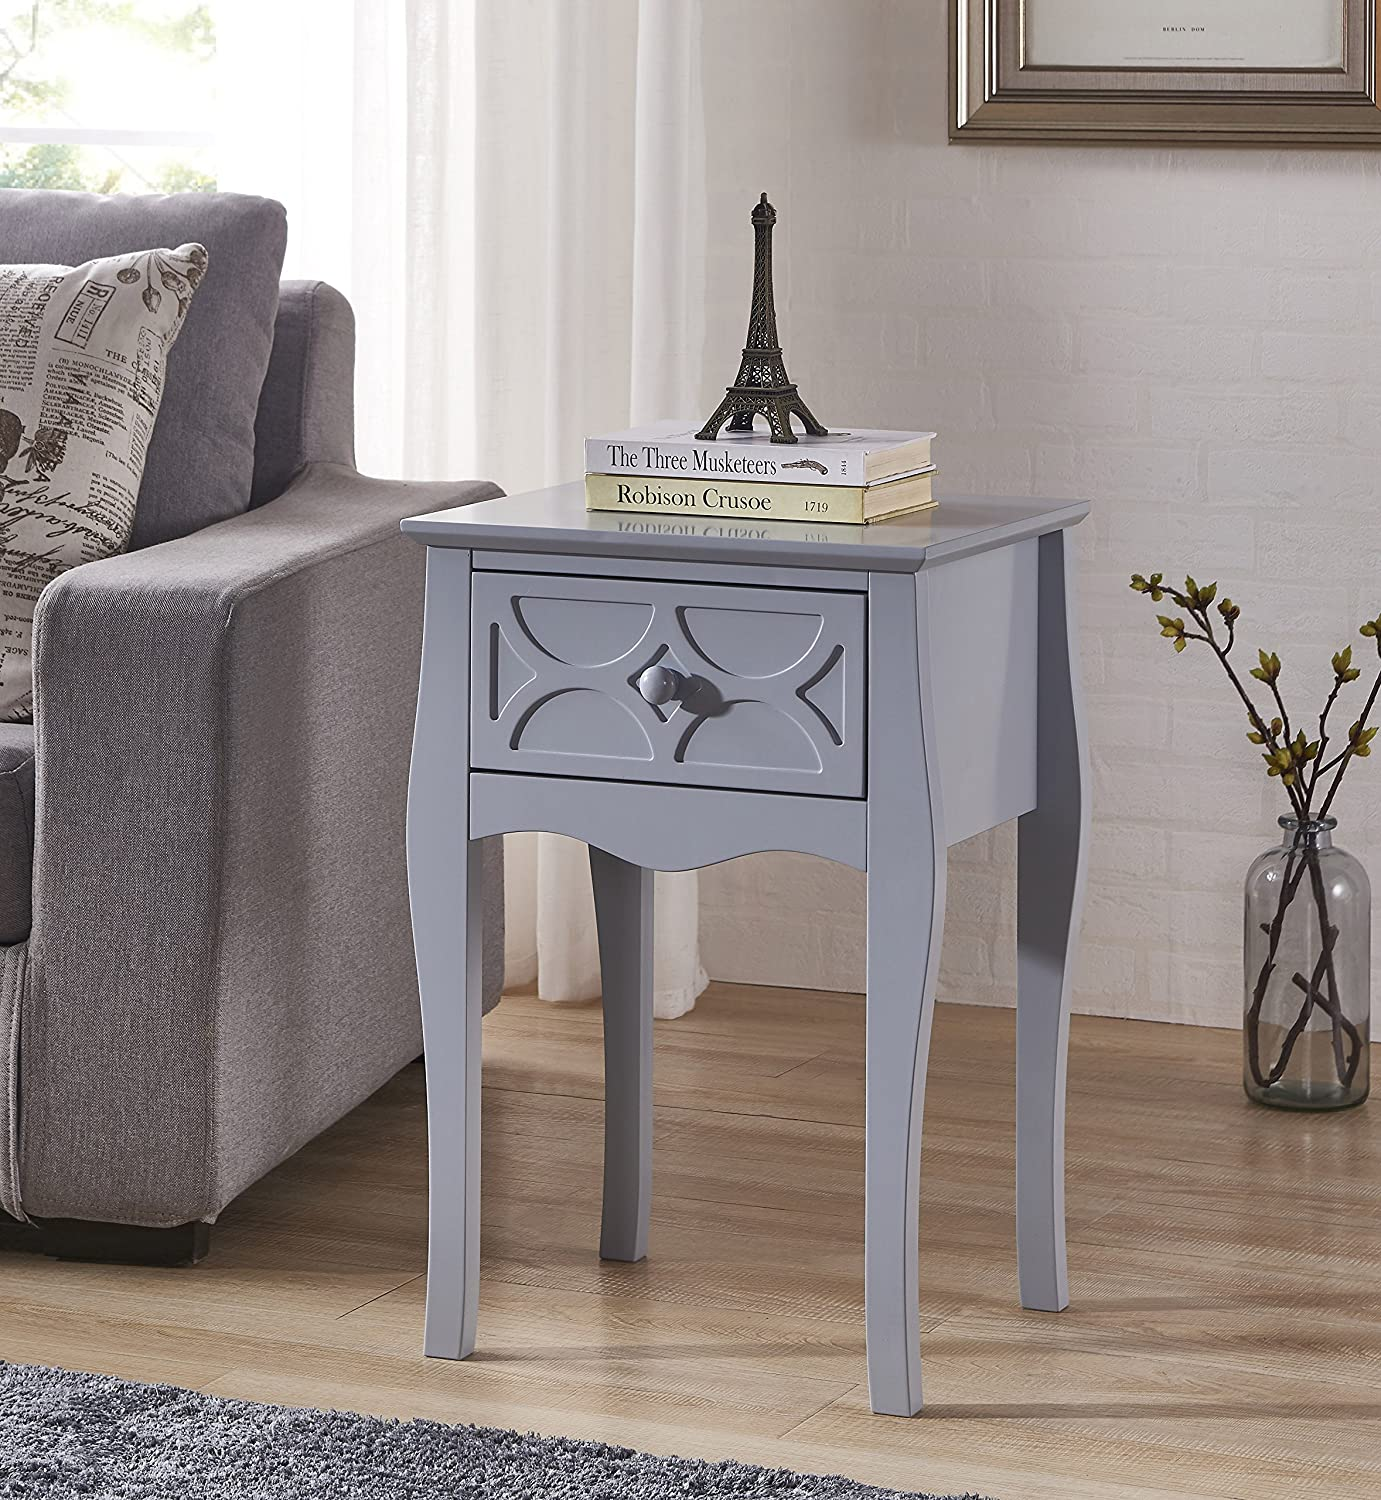 Grey Finish Checker Front Design Nightstand Side End Table with Drawer None NT-20226